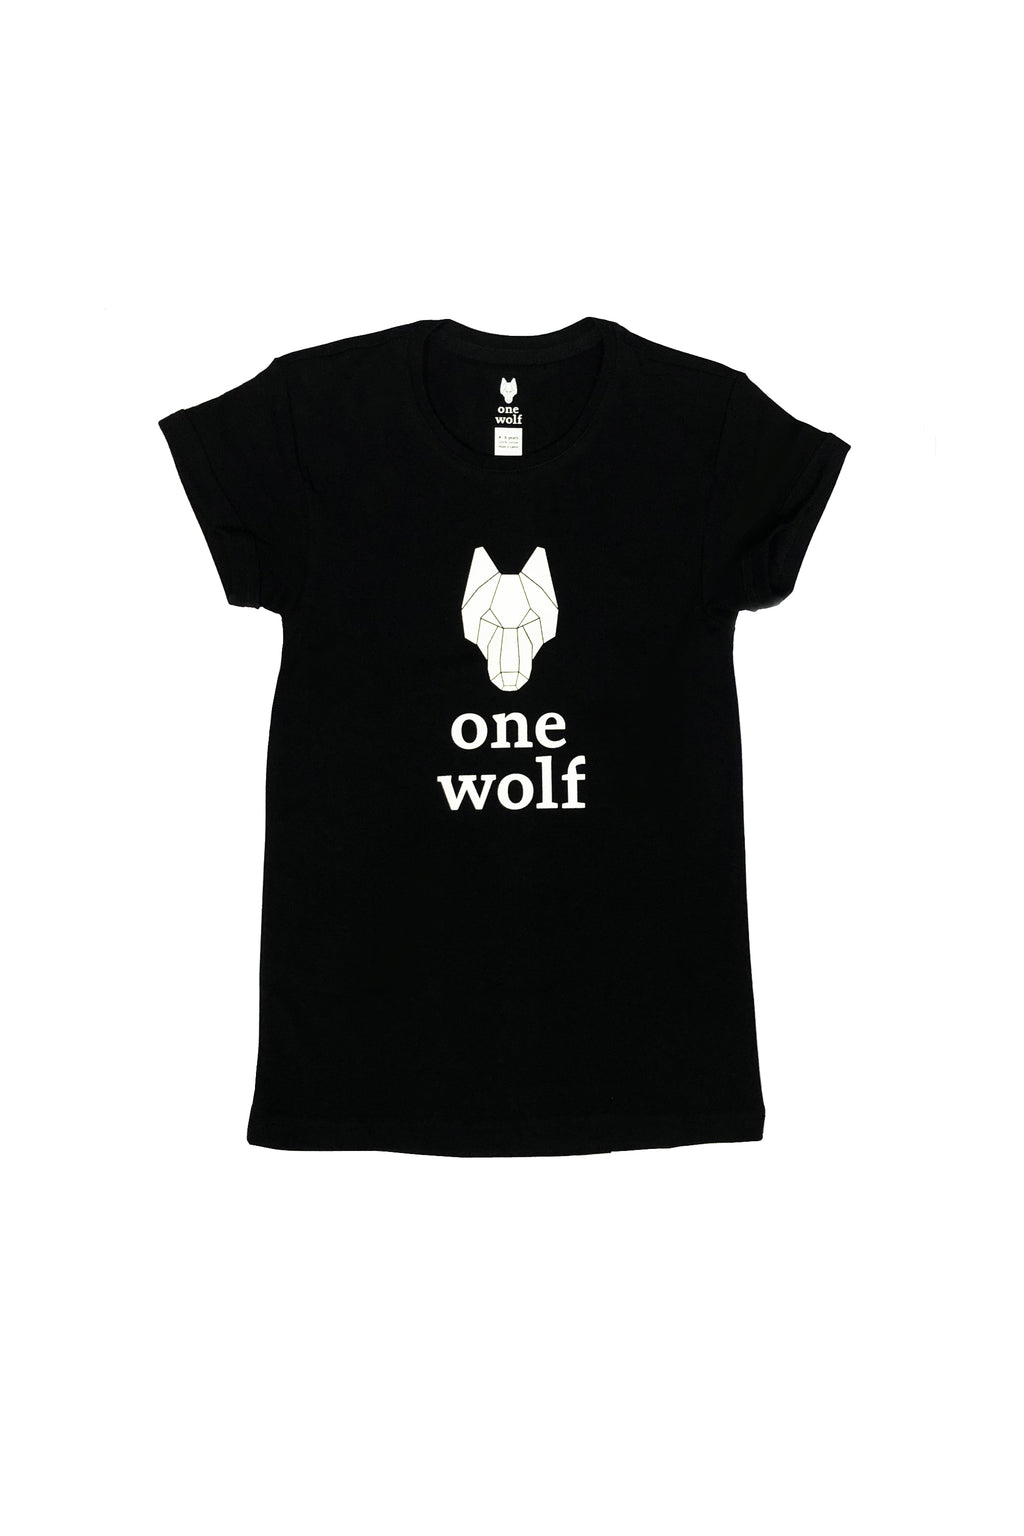 KIDS OW LOGO T-shirt black/white logo - One Wolf